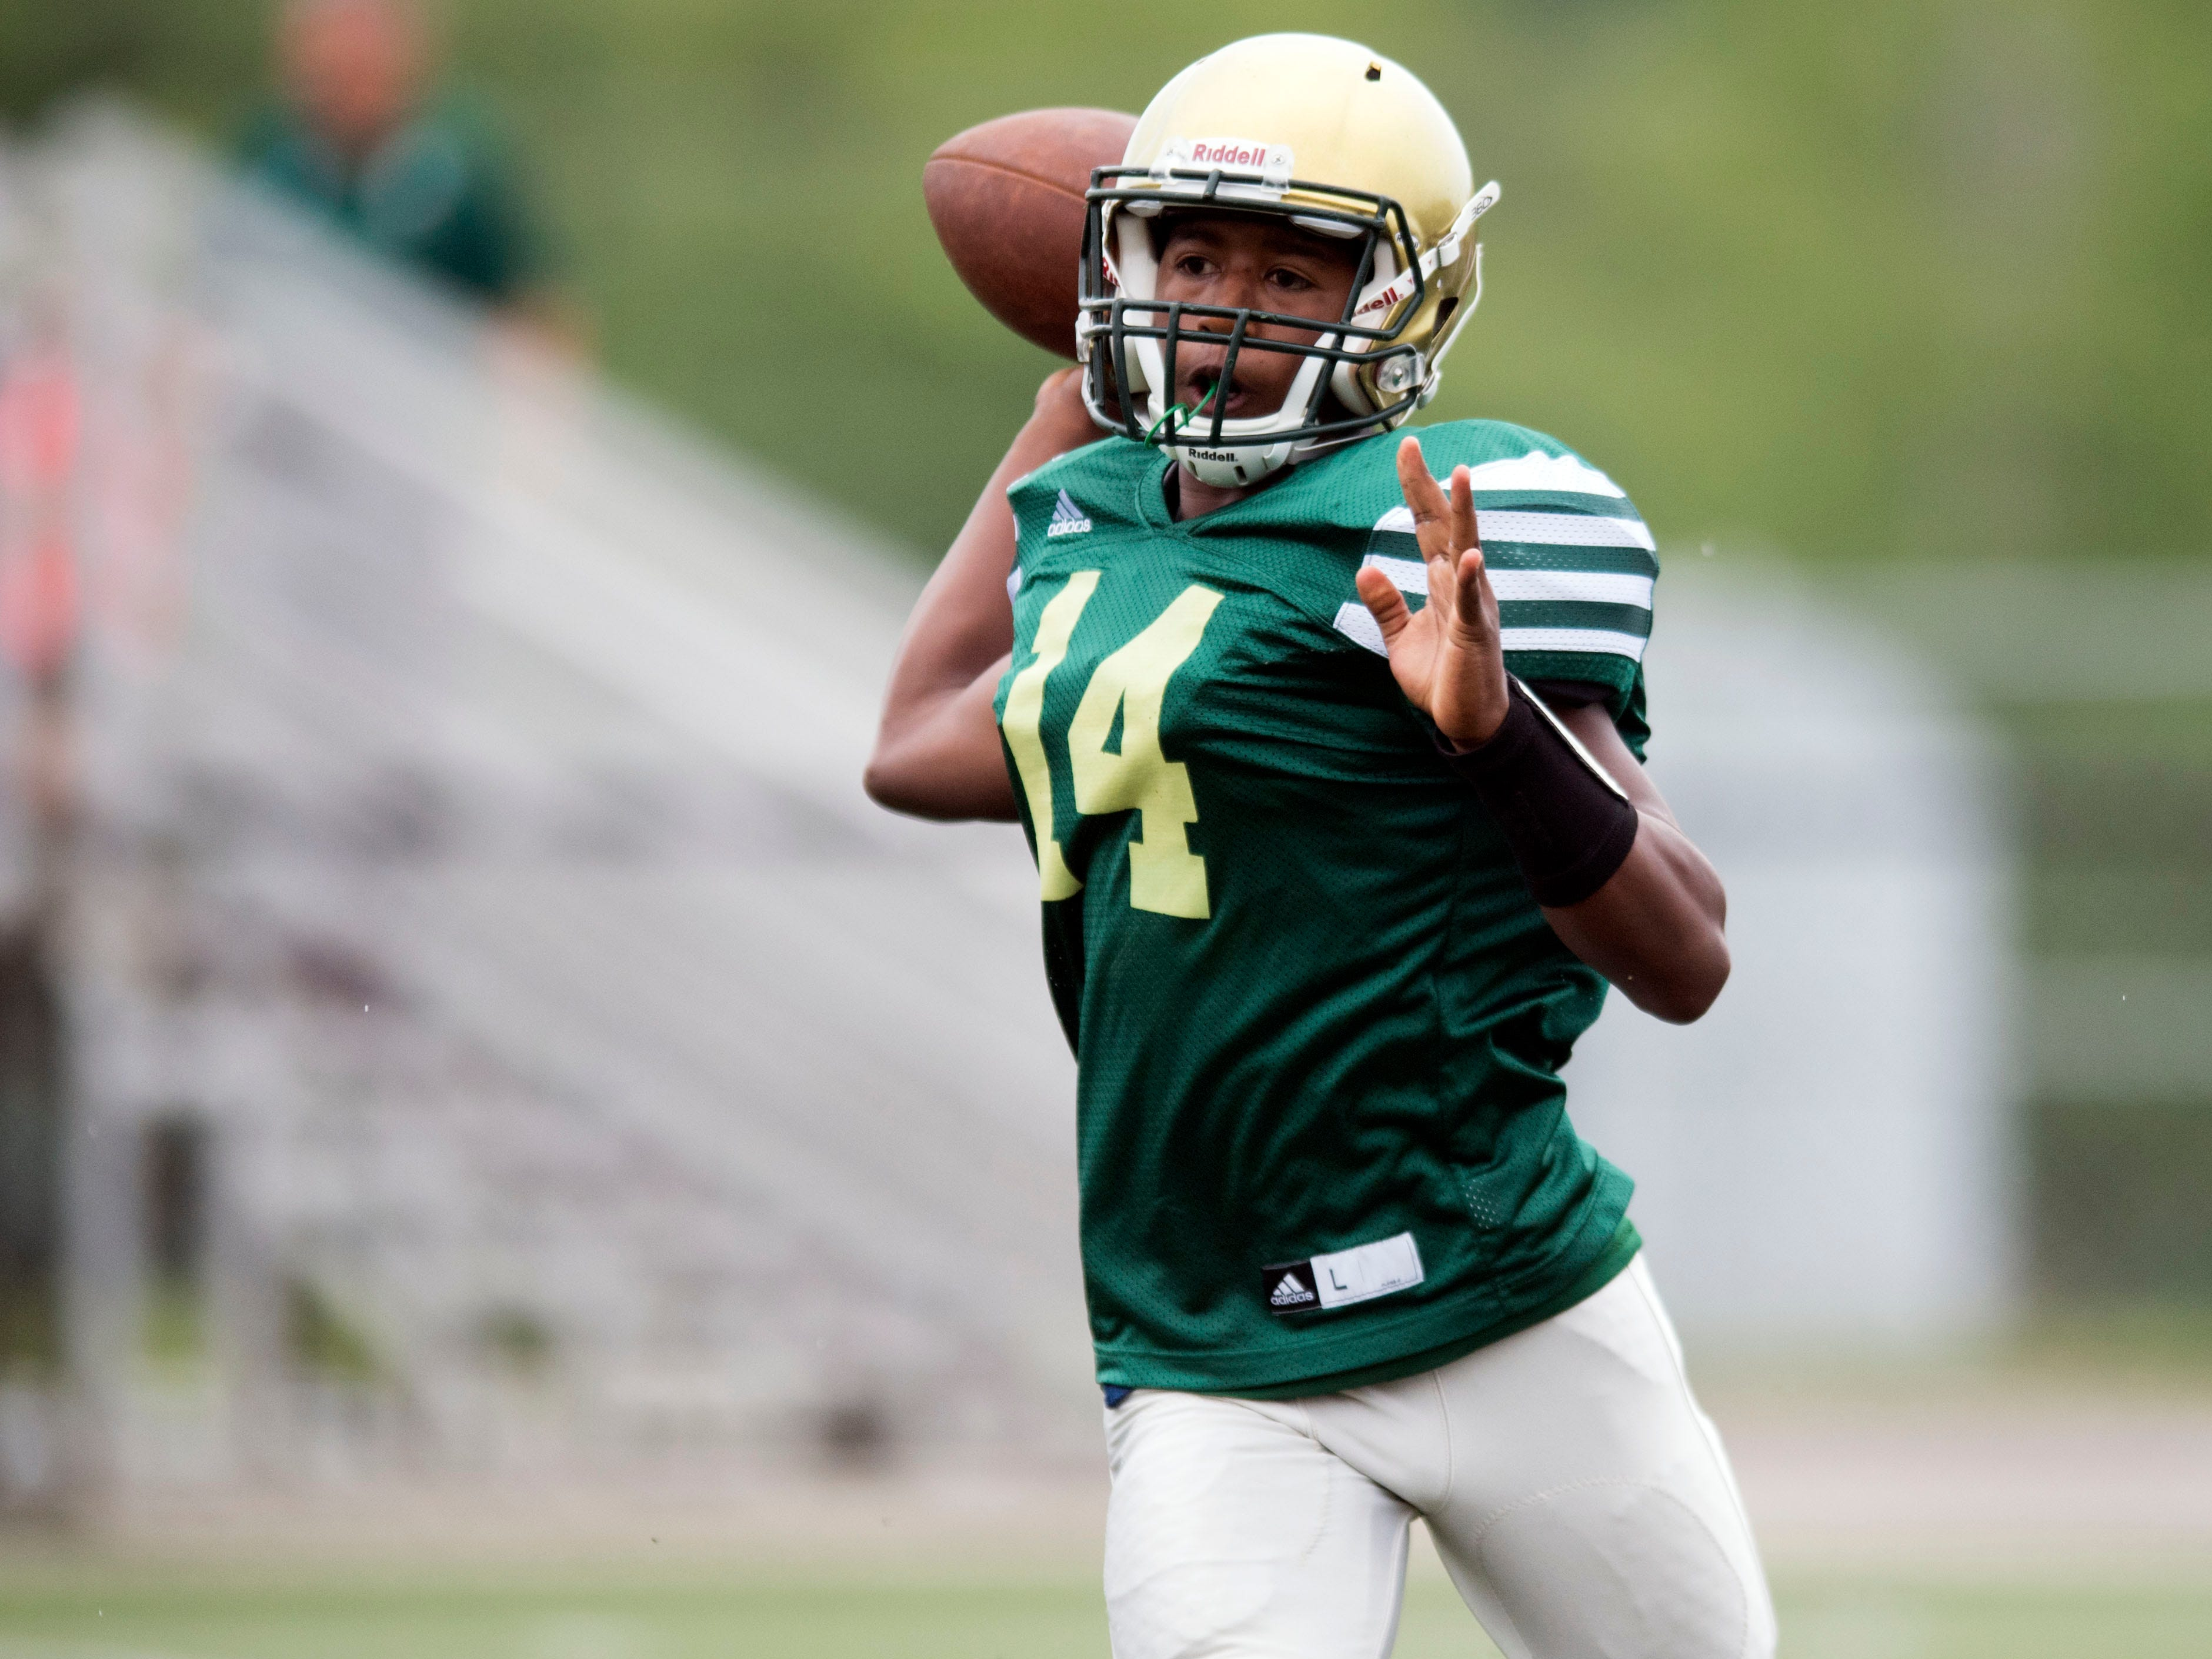 Knoxville Catholic's Paul Fisher (14) throws to a receiver during a football scrimmage against Alcoa on Tuesday, July 31, 2018.